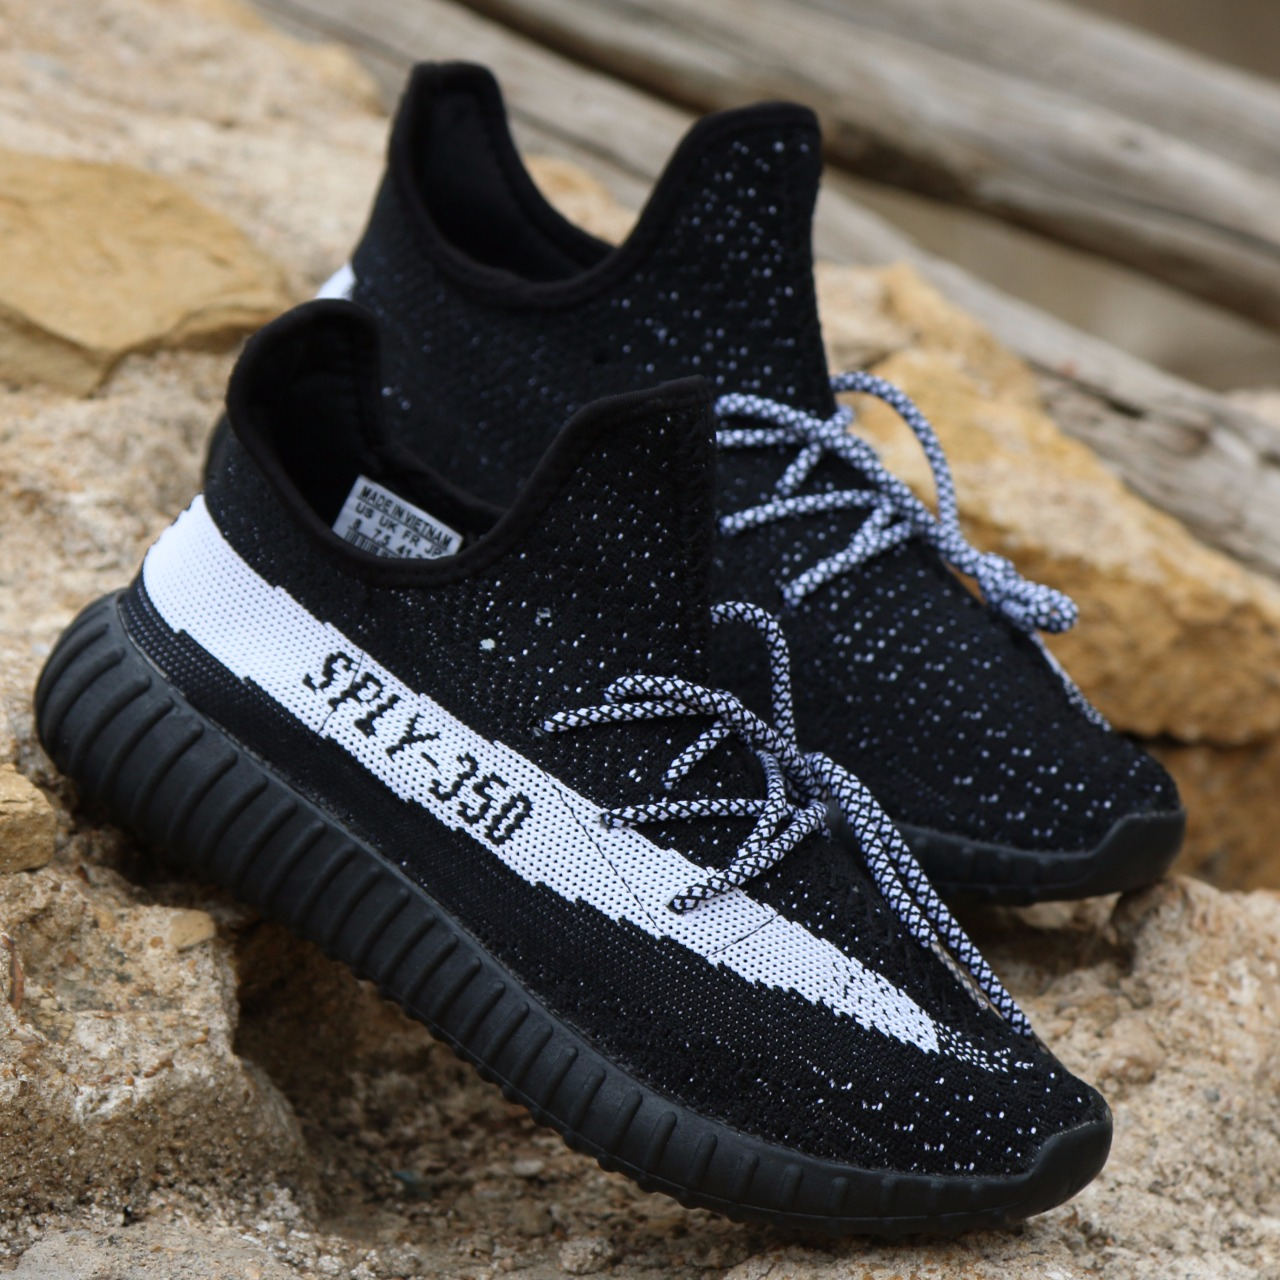 sports shoes f8a54 01bf8 Sply YEEZY BOOST 350 V2 BLACK/WHITE